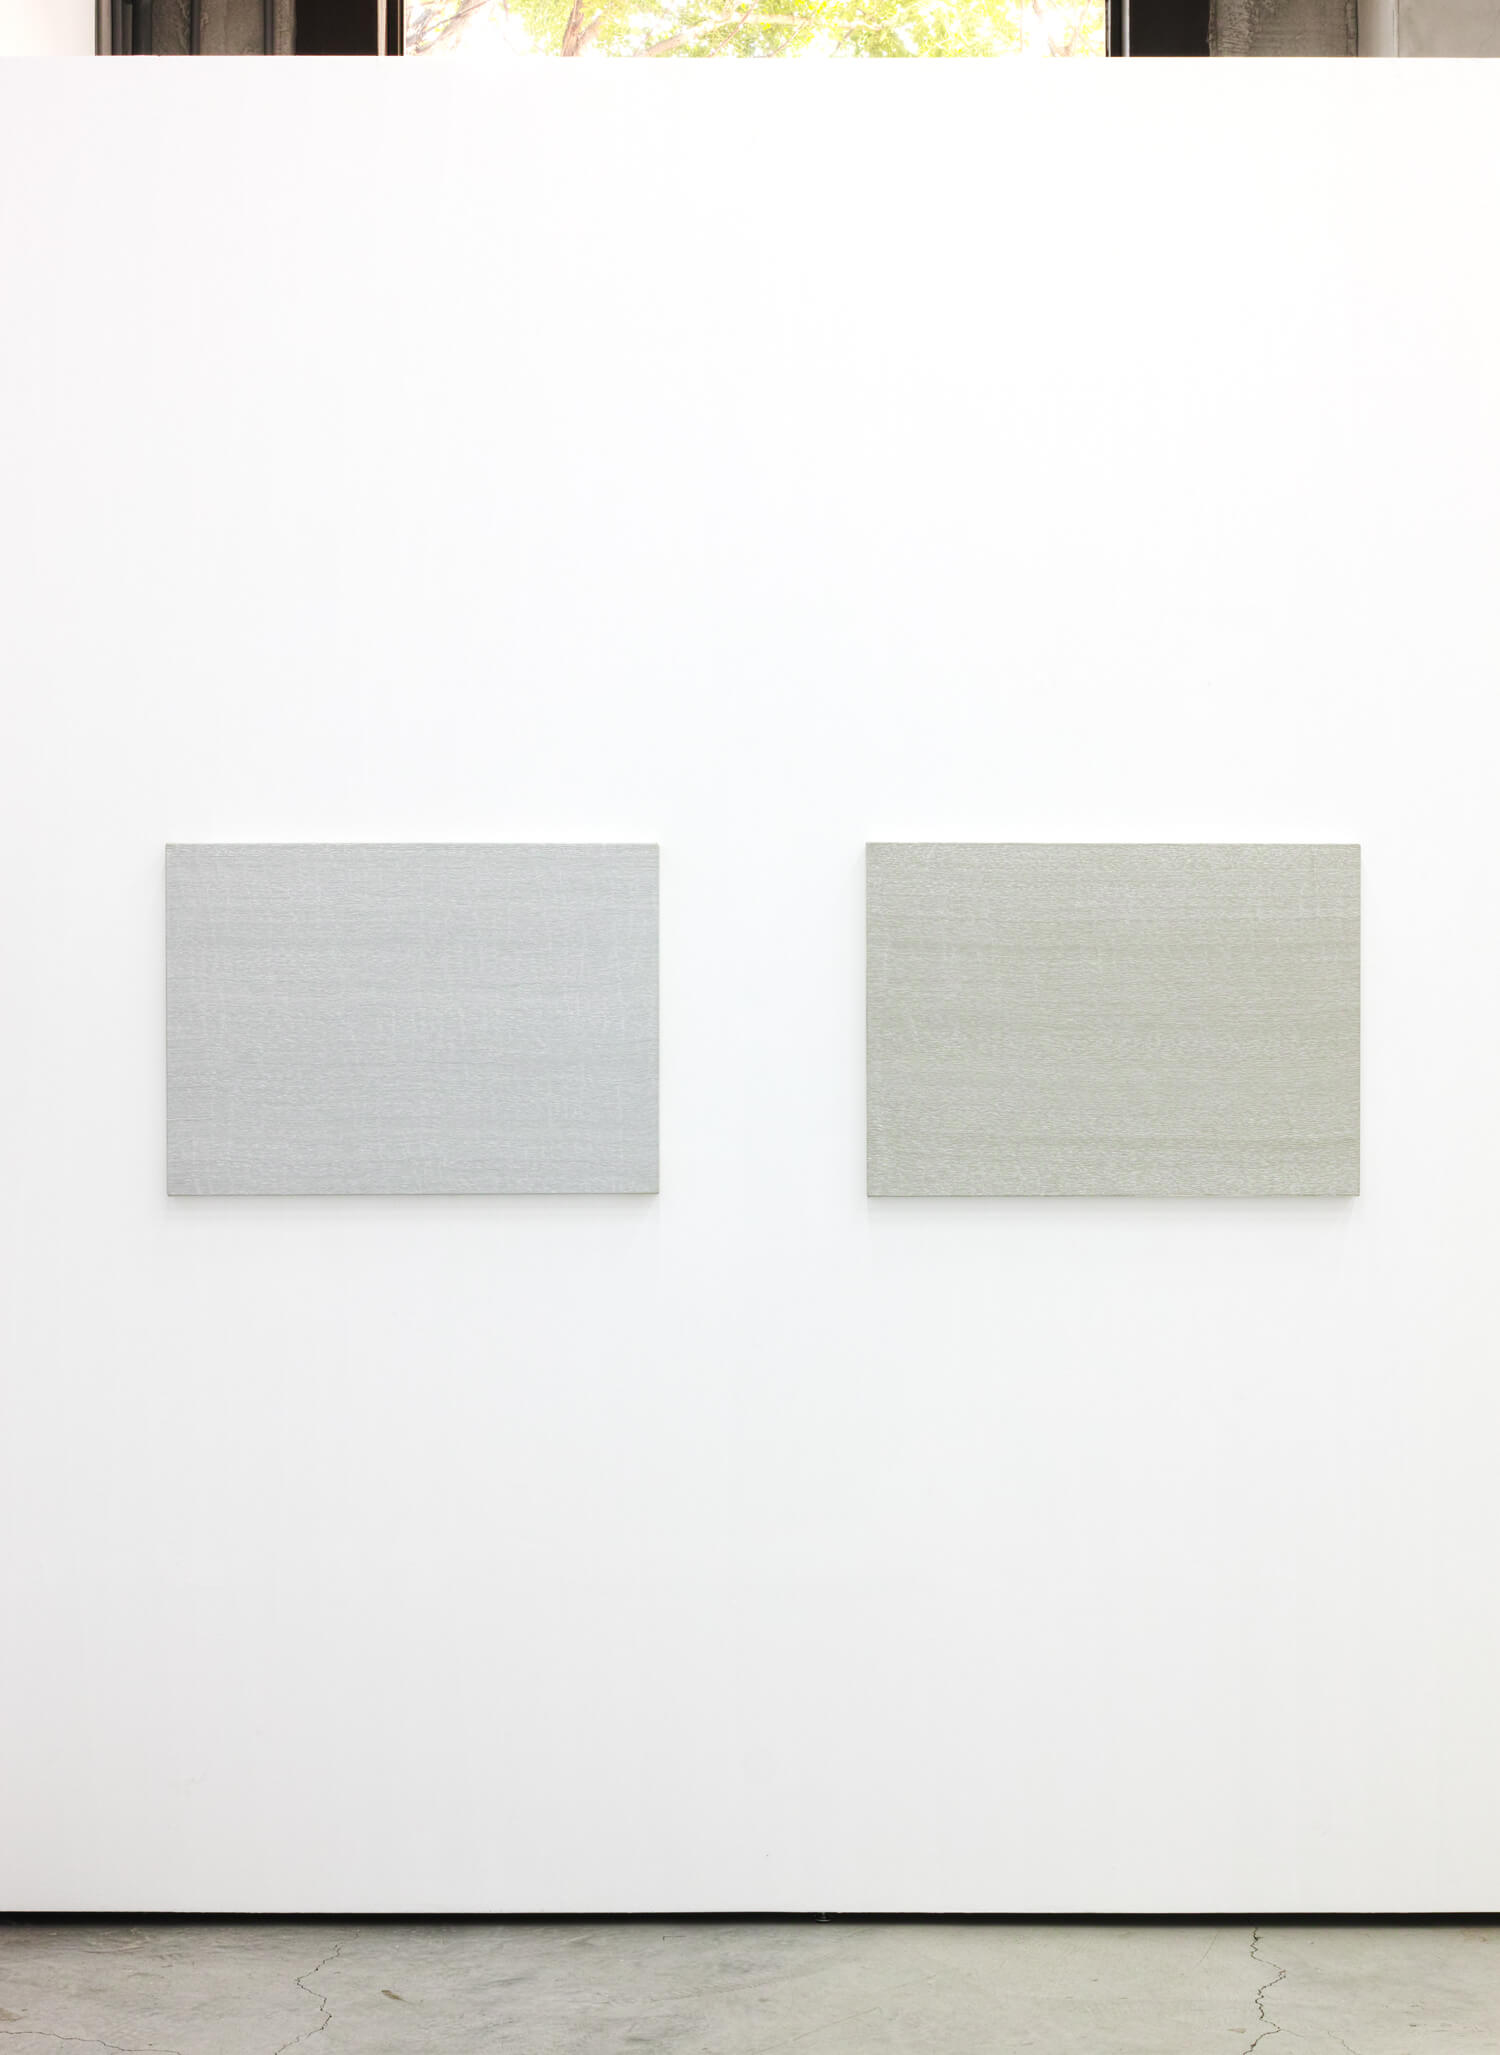 'Breath - warm gray'  (left) & 'Breath - cool gray' (right)<br>Oil on canvas , 56 x 78 cm, 1996 each